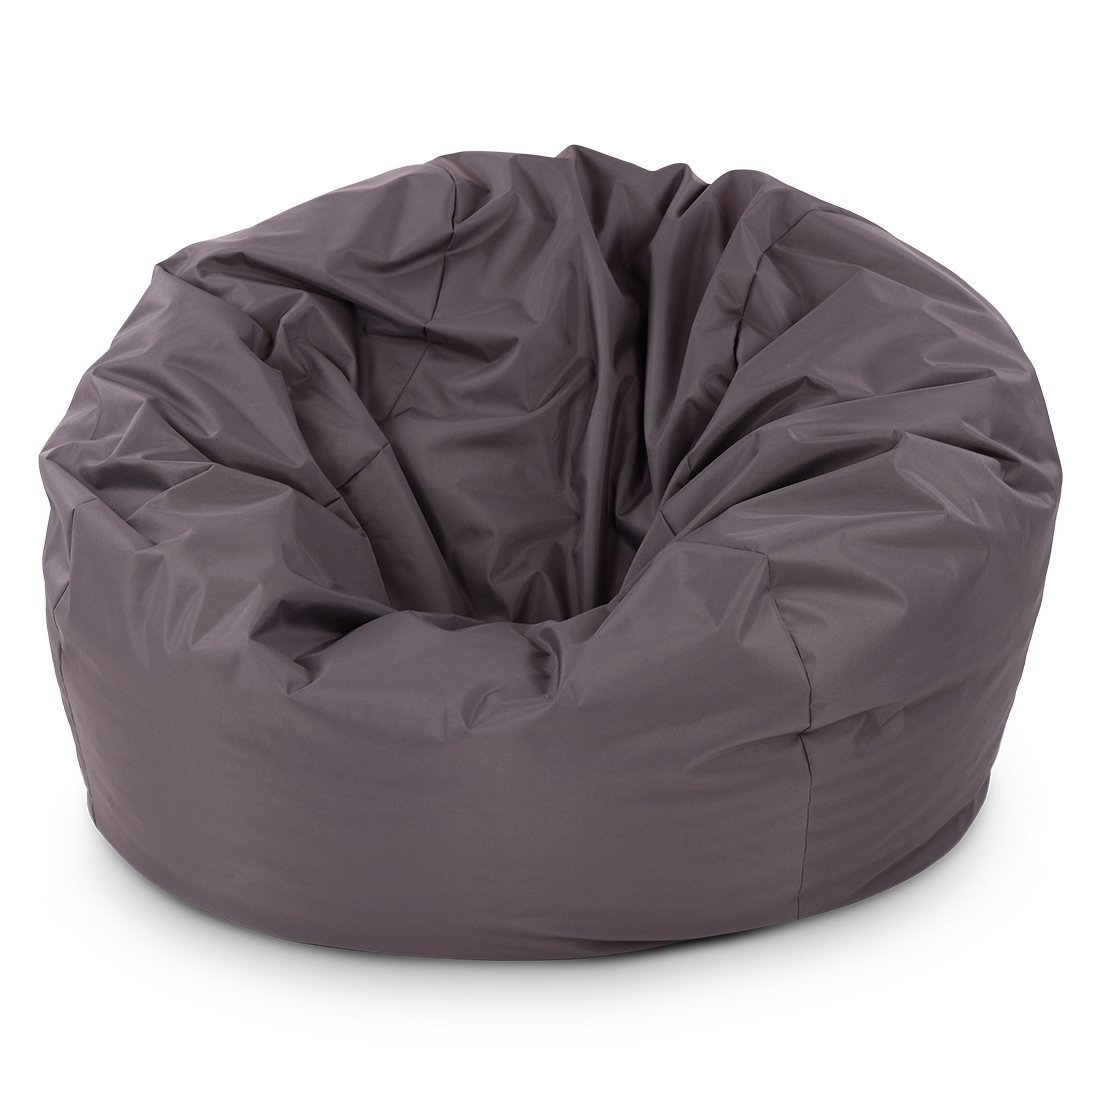 Memory Foam Bean Bag Chair Home Furniture Design